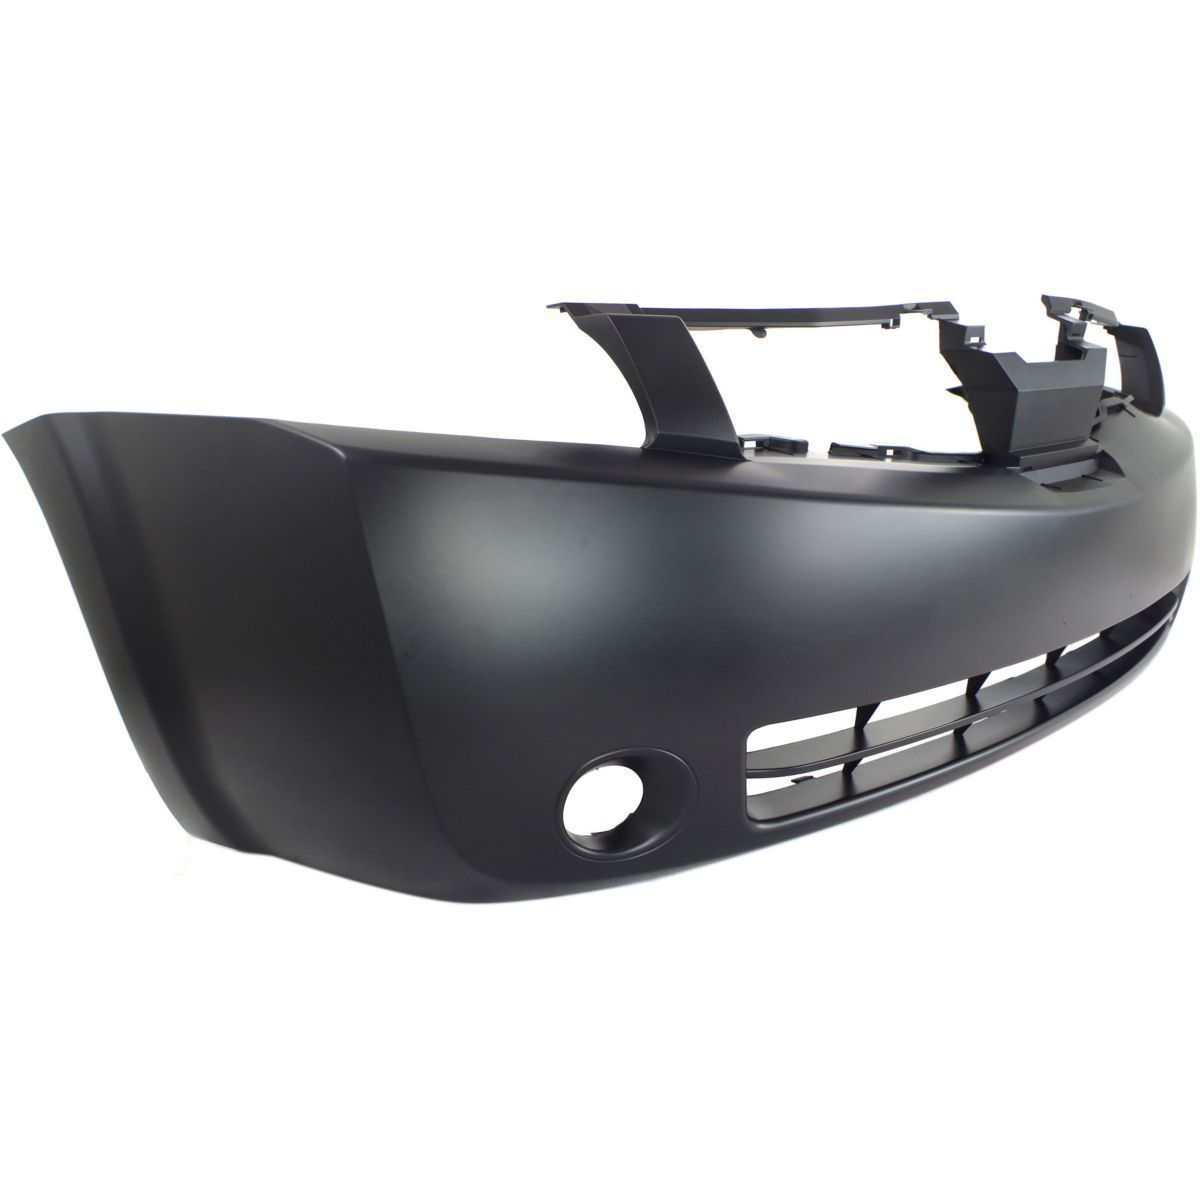 2004-2006 Nissan Quest Front Bumper Painted to Match